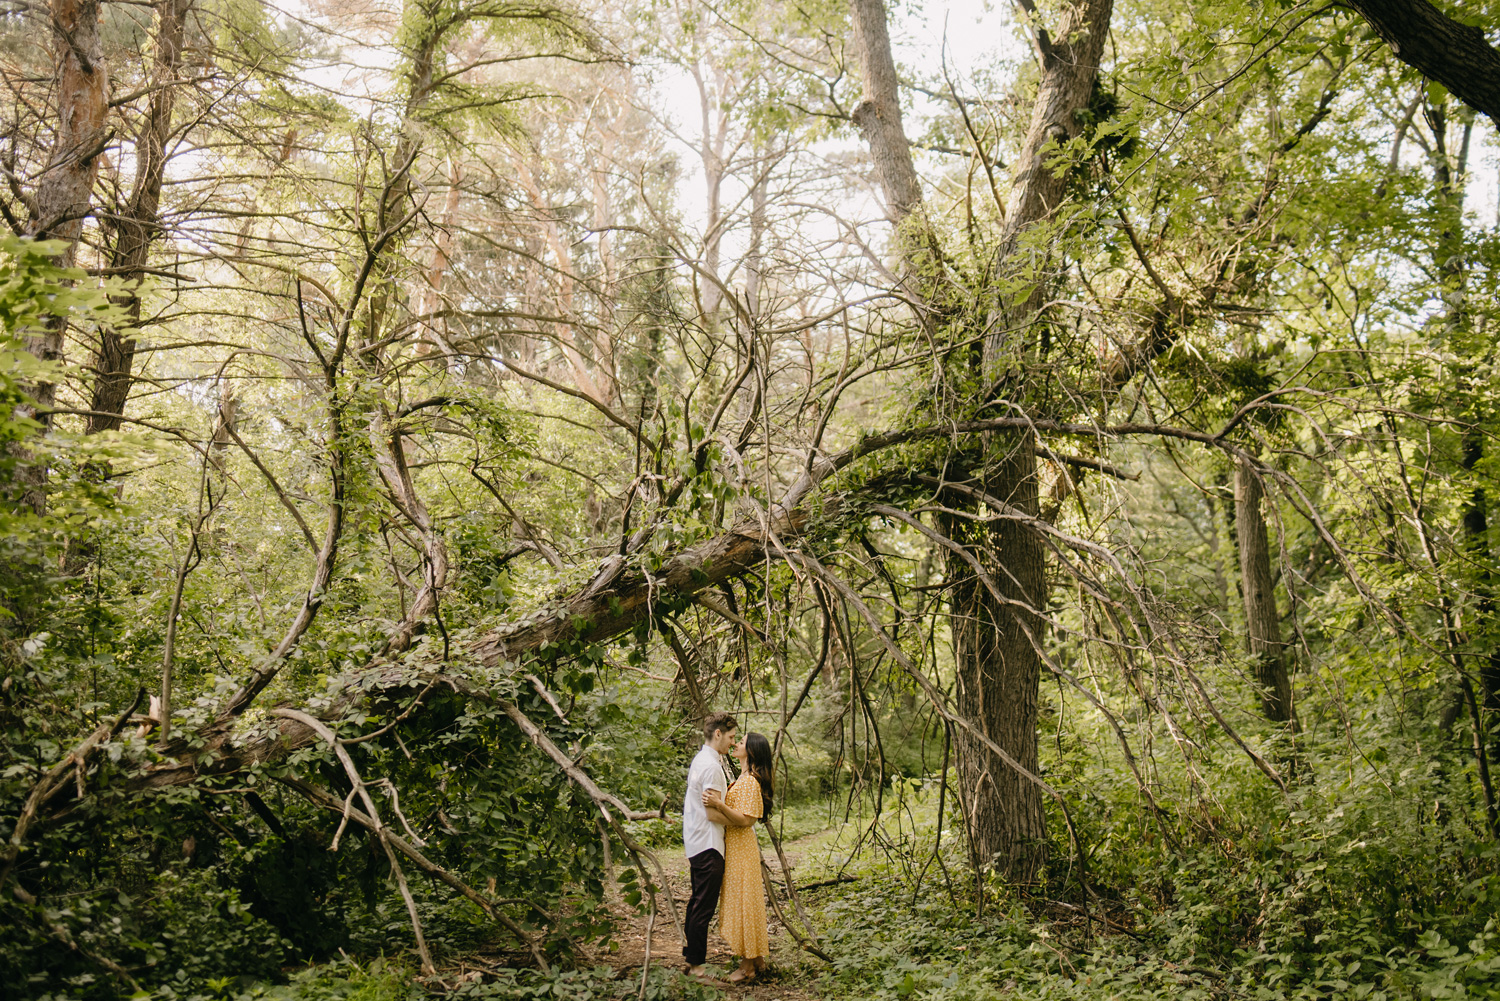 Man and woman under fallen tree in forest